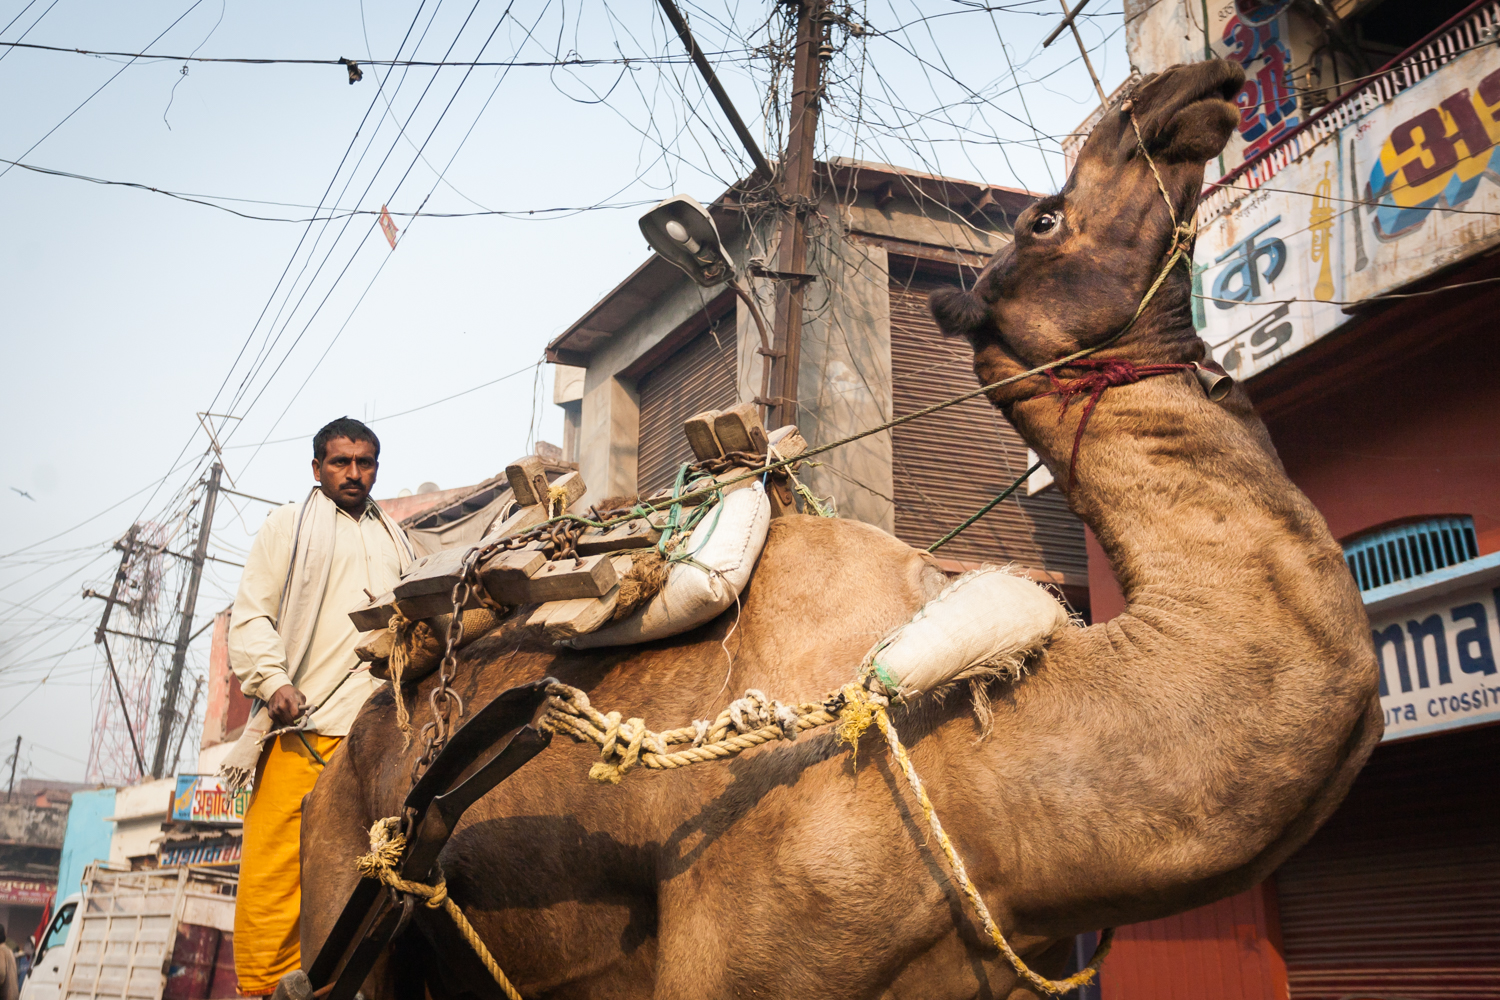 man-riding-camel-pushkar-india.jpg